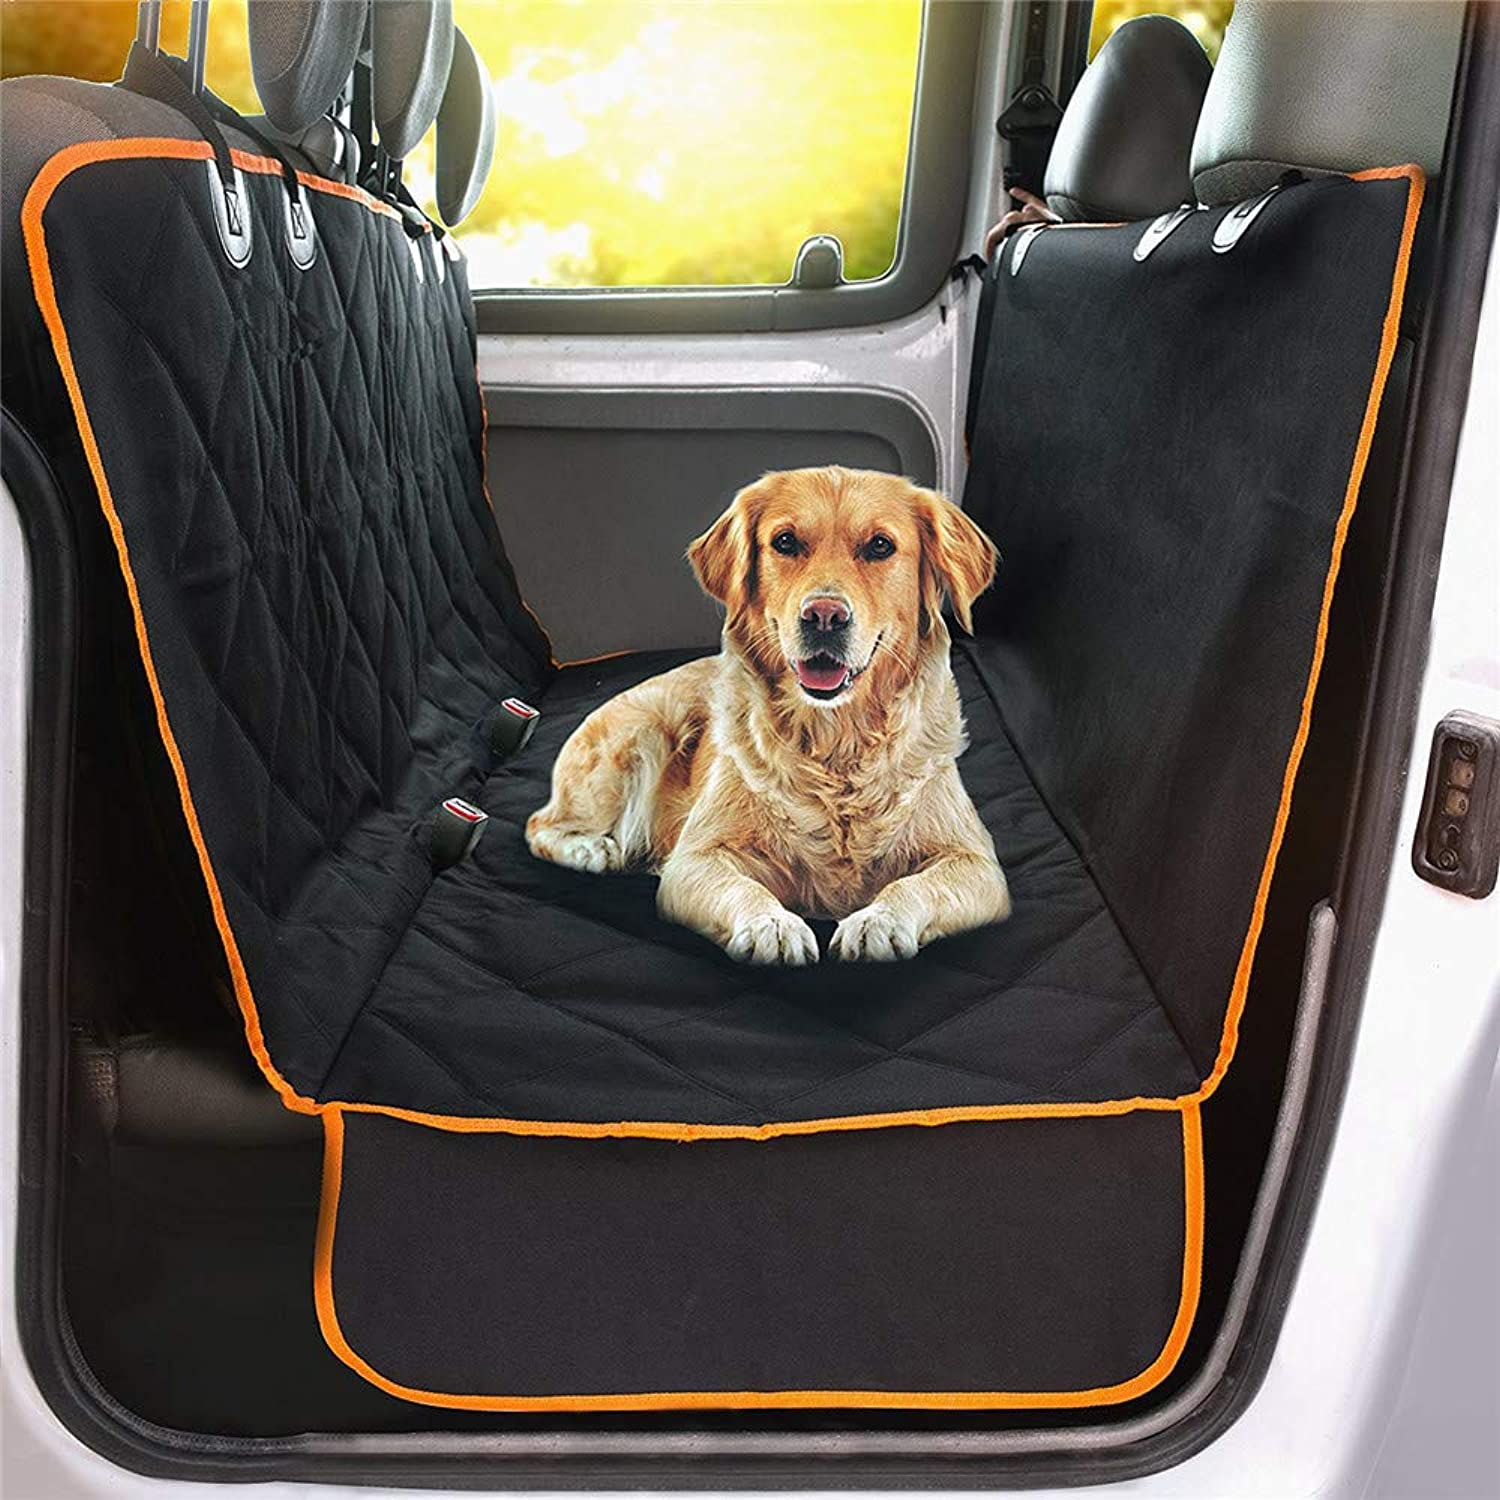 Dog Car Seat Cover  Waterproof Nonslip Back Seat Dog PredectionCars, Trucks and Suvs Full Predector, w Extra Side Flaps  Hammock Congreenible for Your Pet